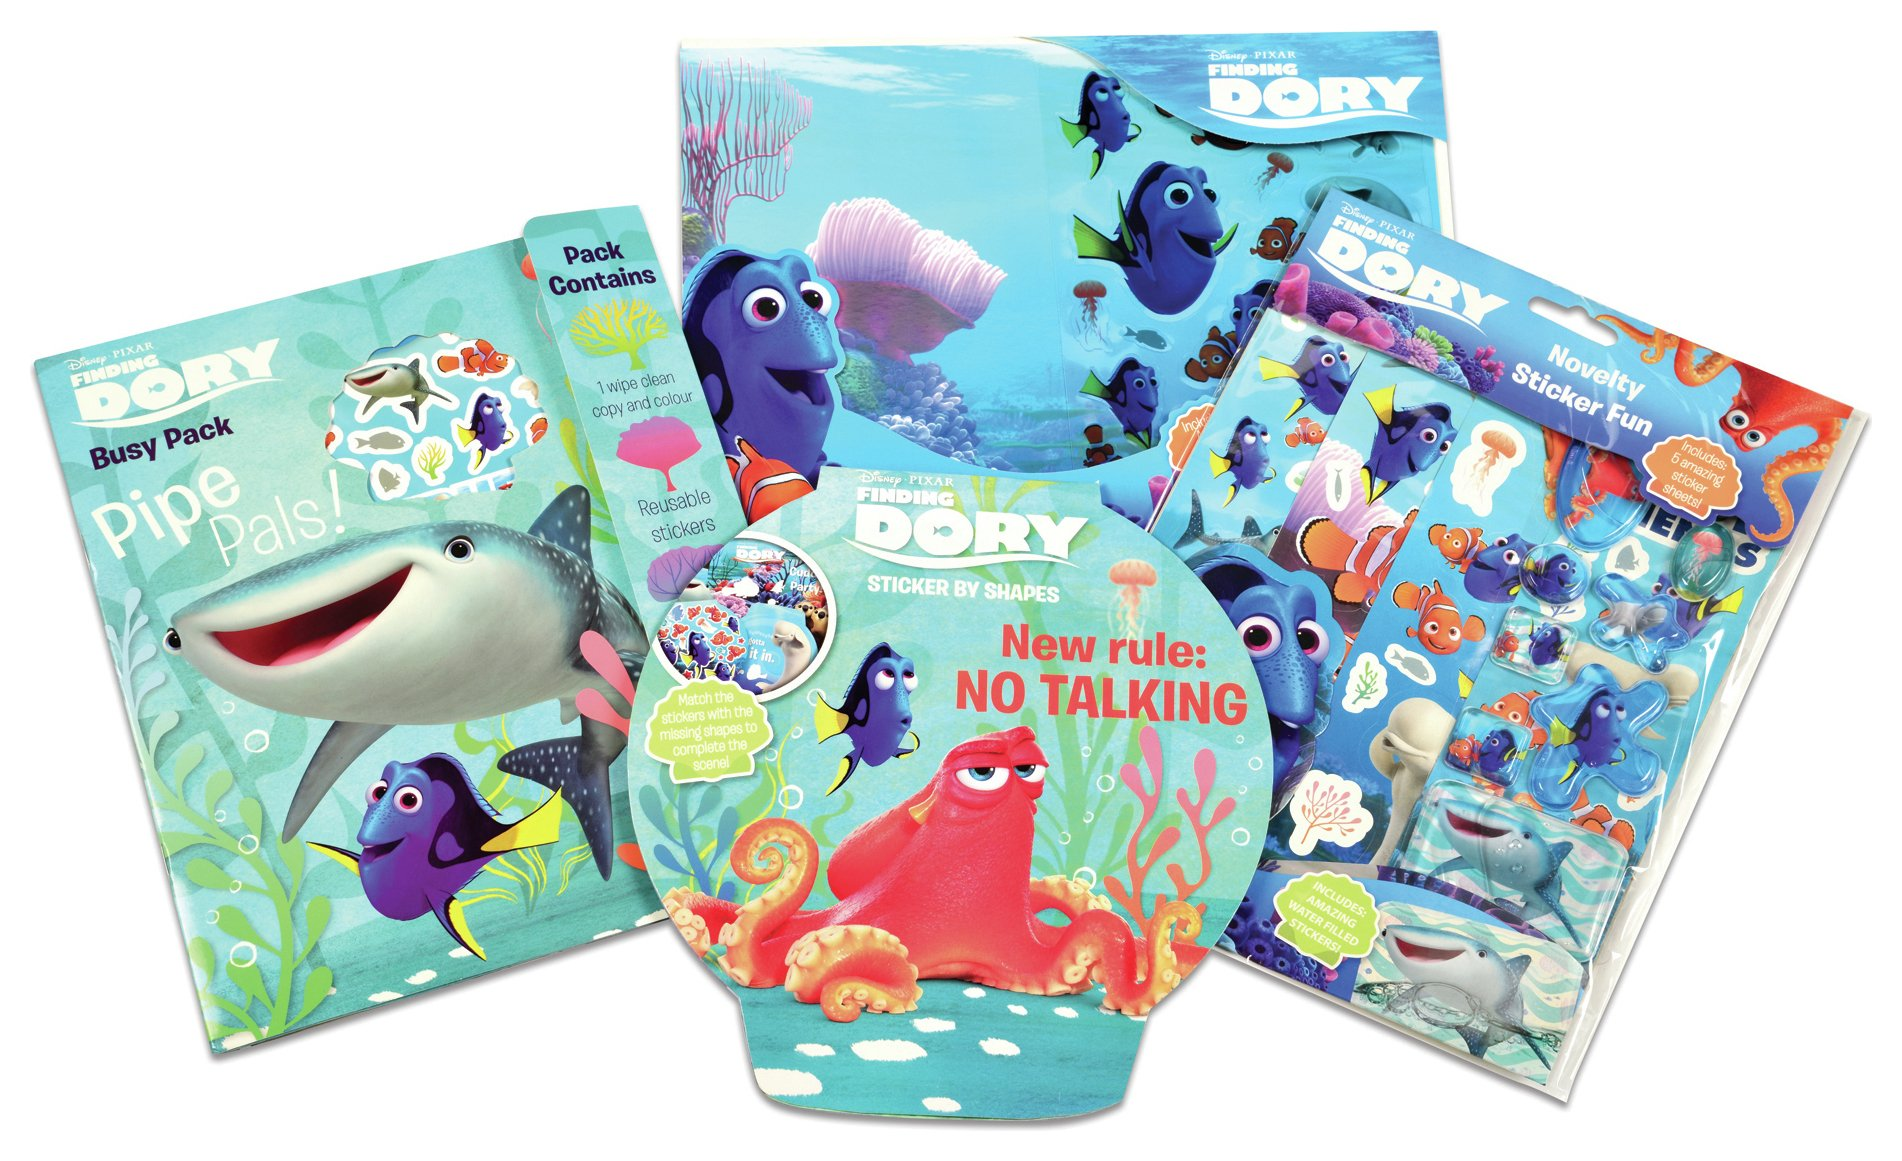 Image of Disney - Pixar Finding Dory Bundle Pack Novel Sticker